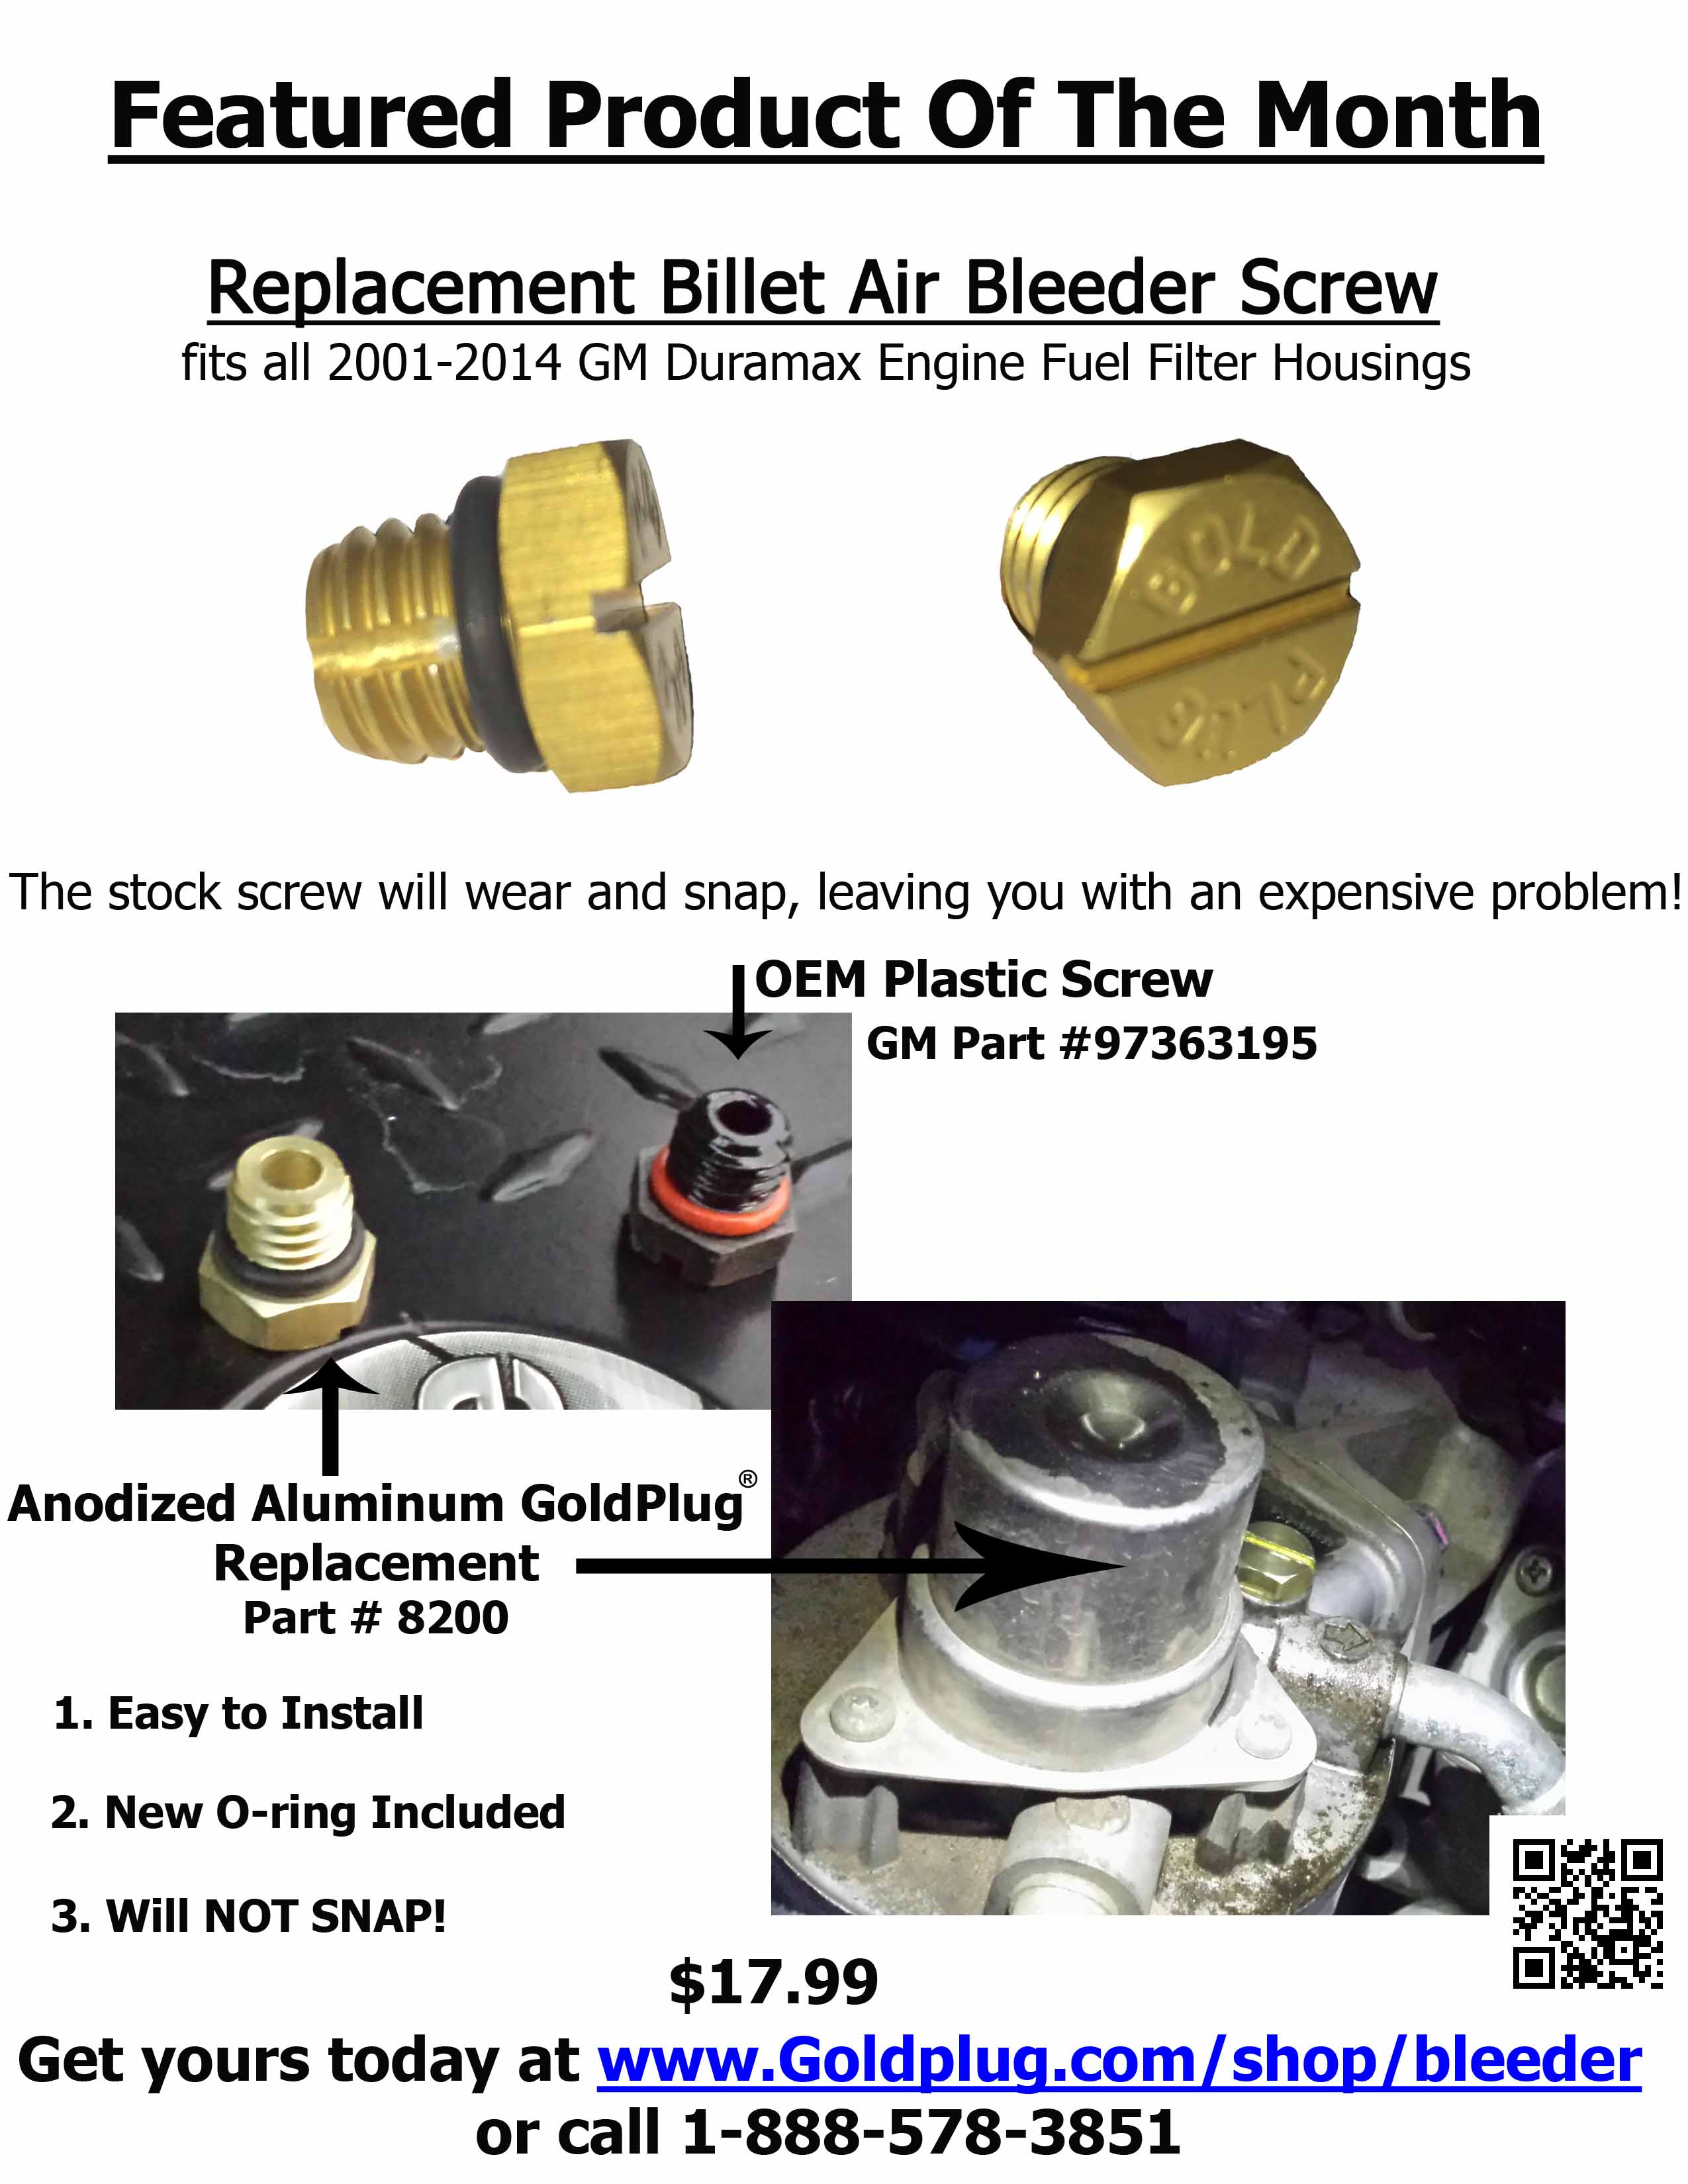 The Banana Pan Gmc Diesel Fuel Filter Head Seal Kit Includes All Seals Required To Rebuild Instructions Included